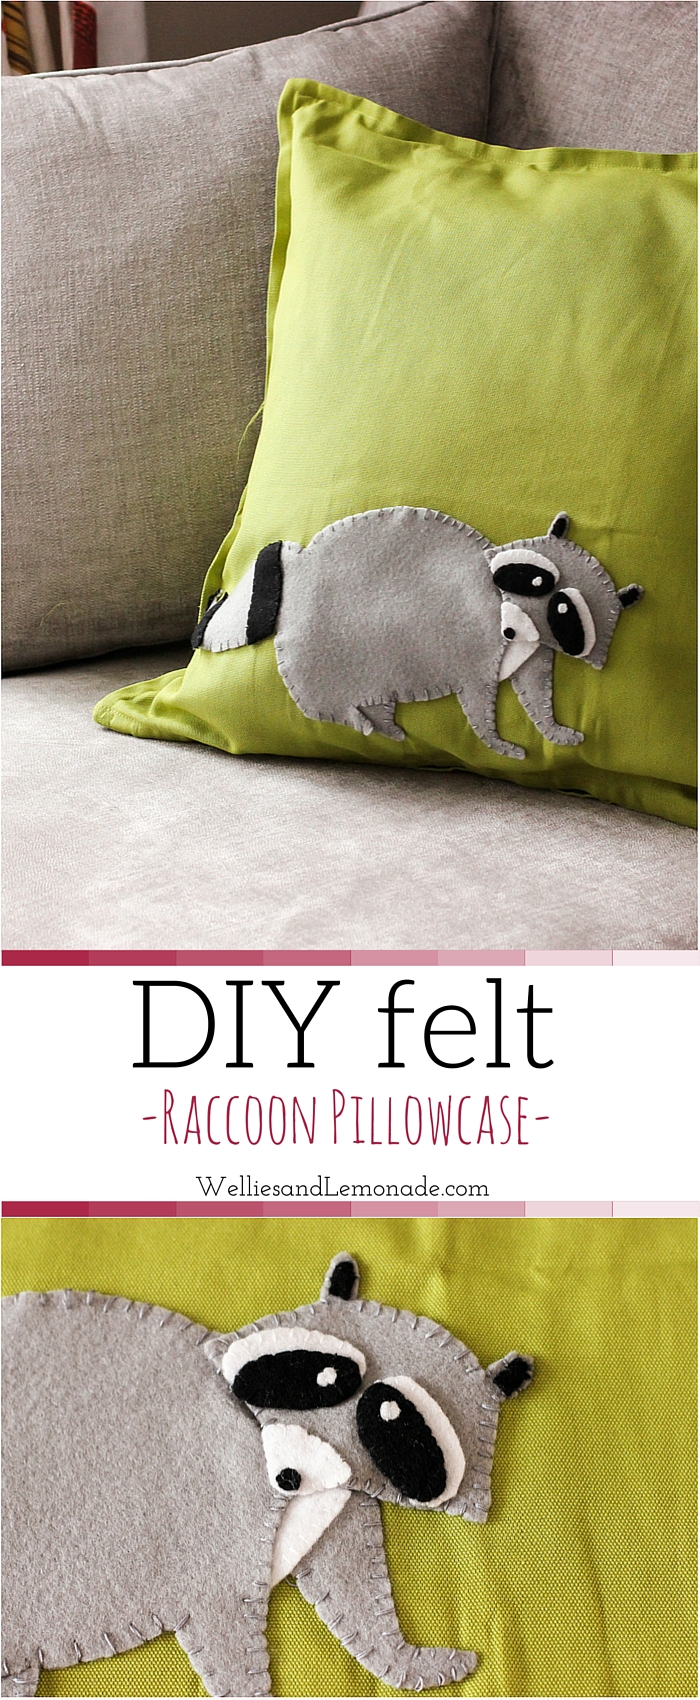 DIY Felt Raccoon Pillowcase